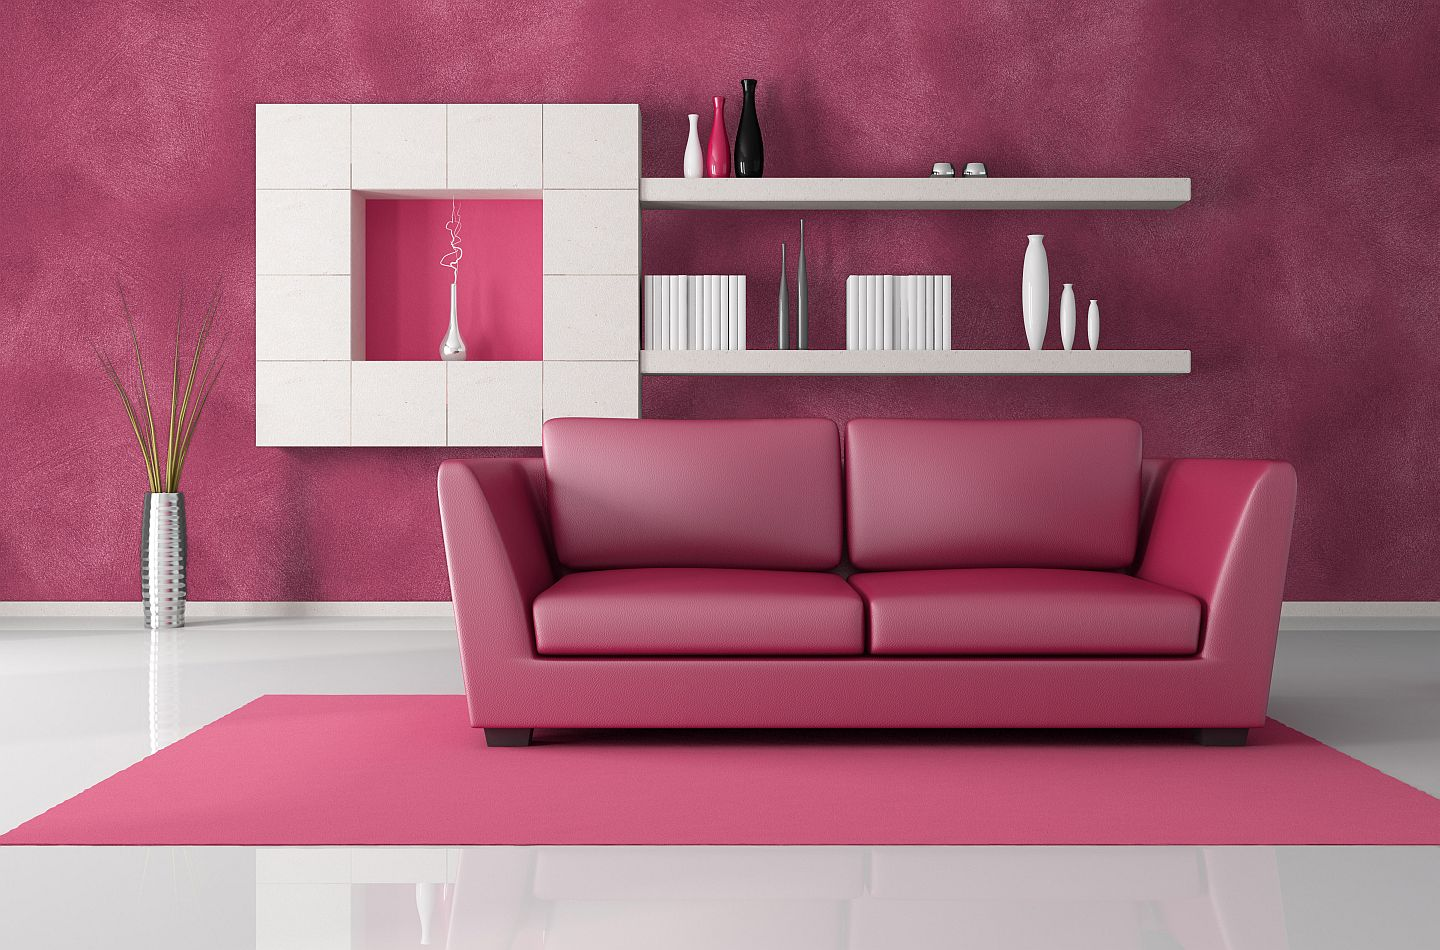 Interior design portfolio mercy web solutions for Interior designs sofa